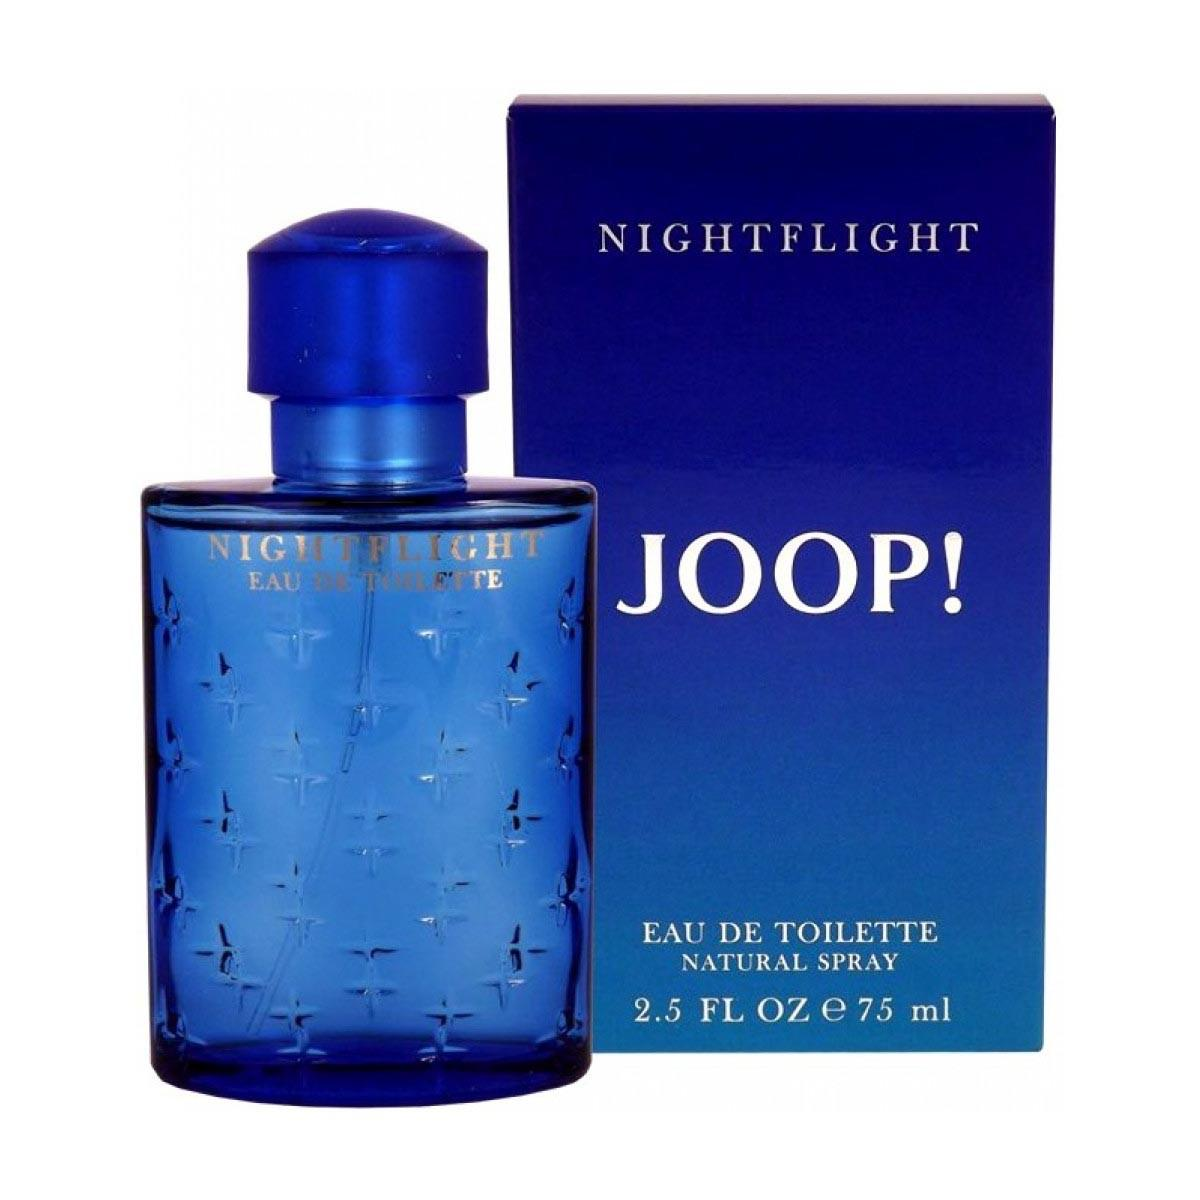 Joop Nightflight Eau De Toilette 75 ml